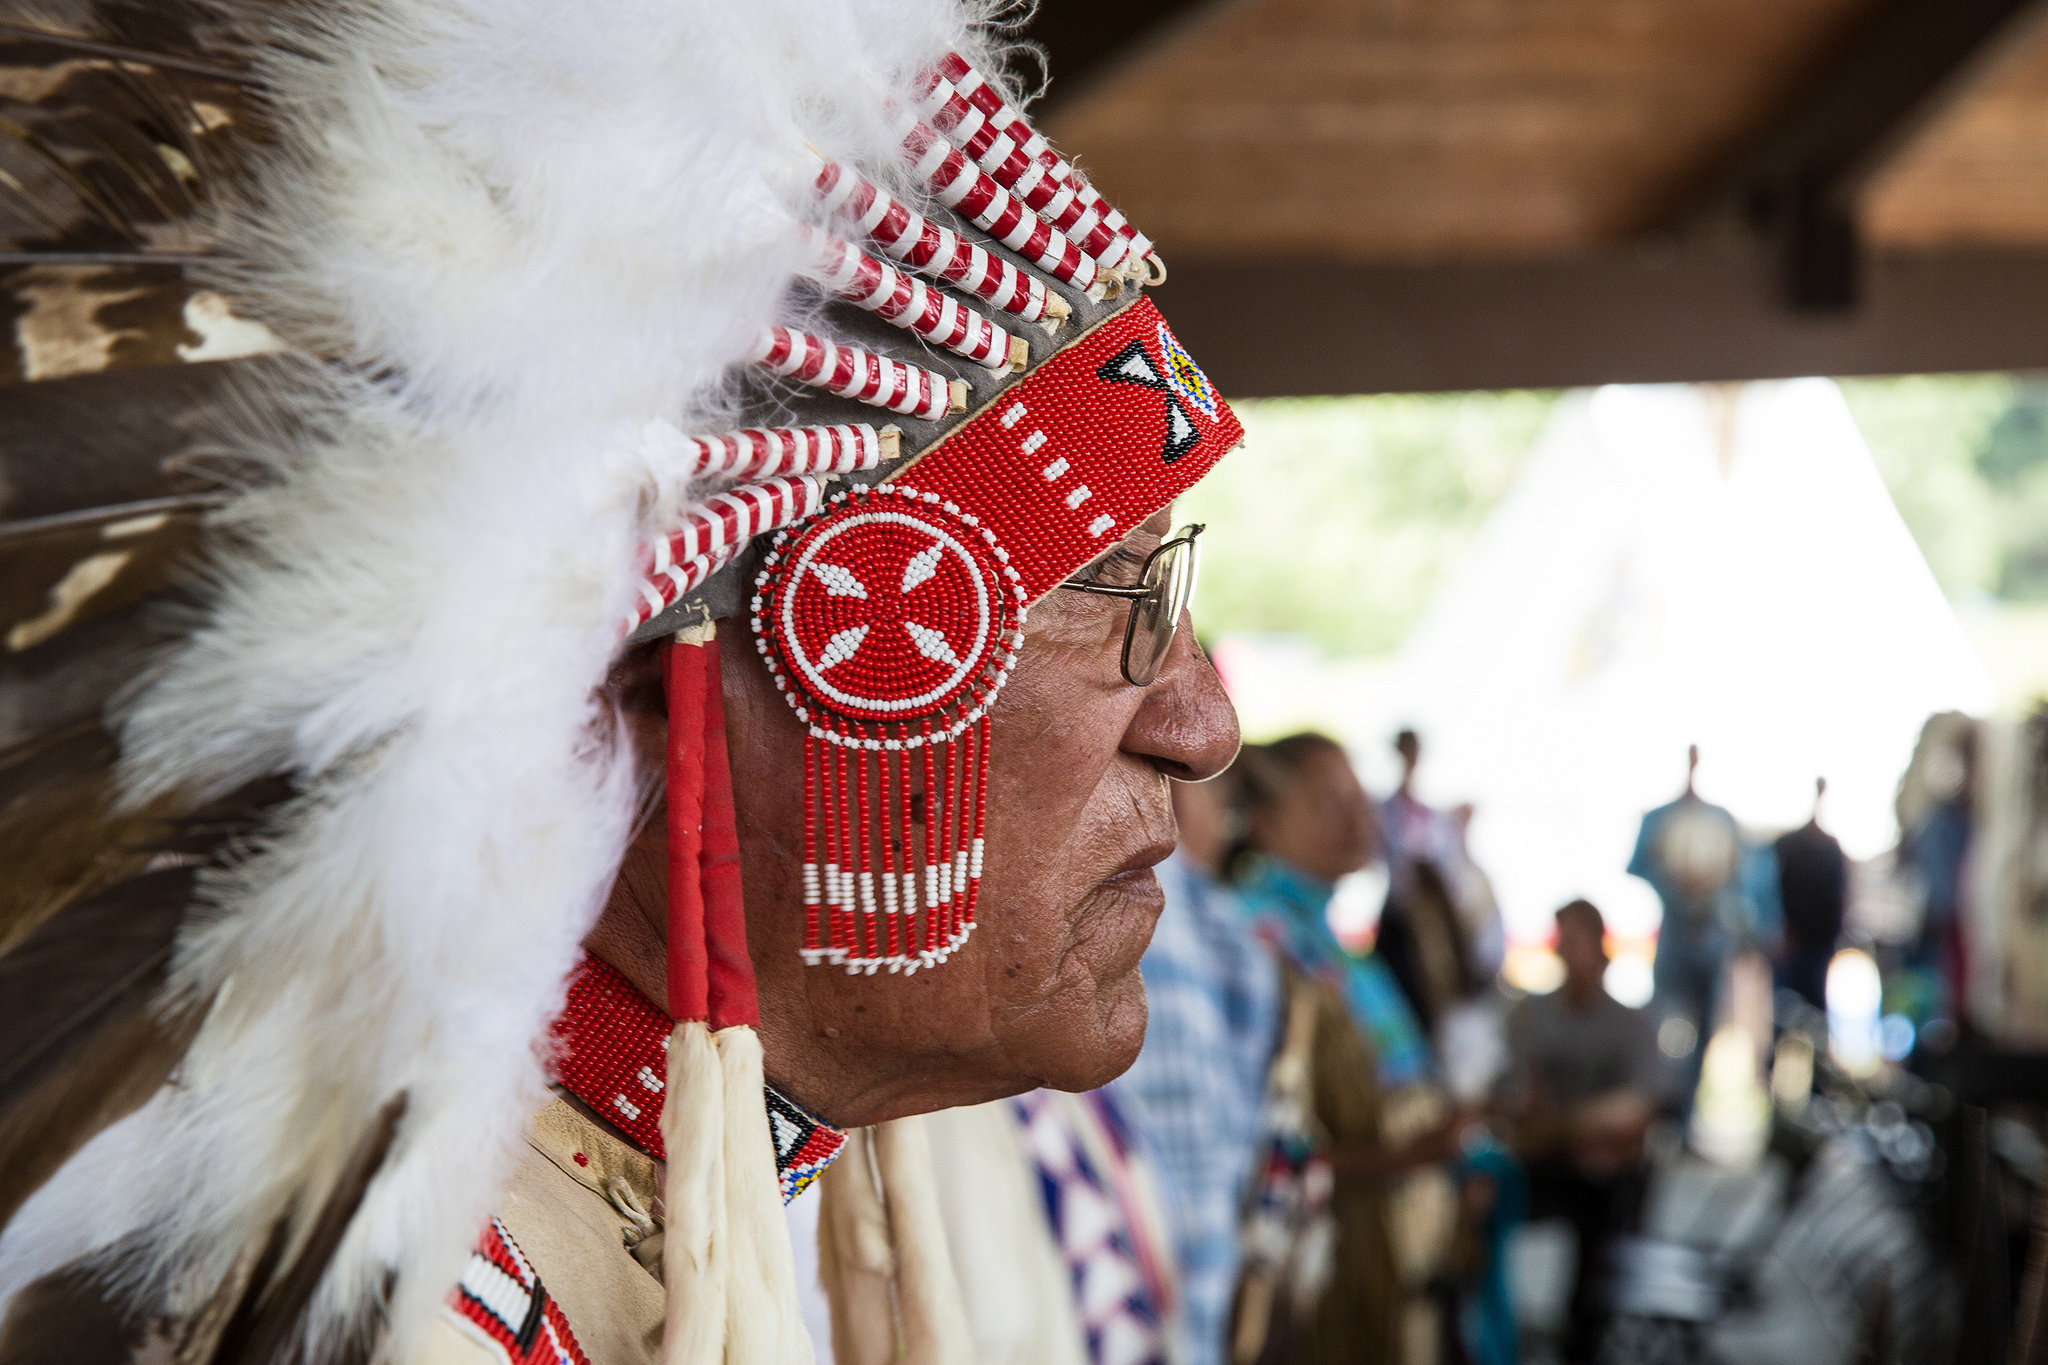 Adult Pow Wow Features Stunning Regalia And Fast Footwork